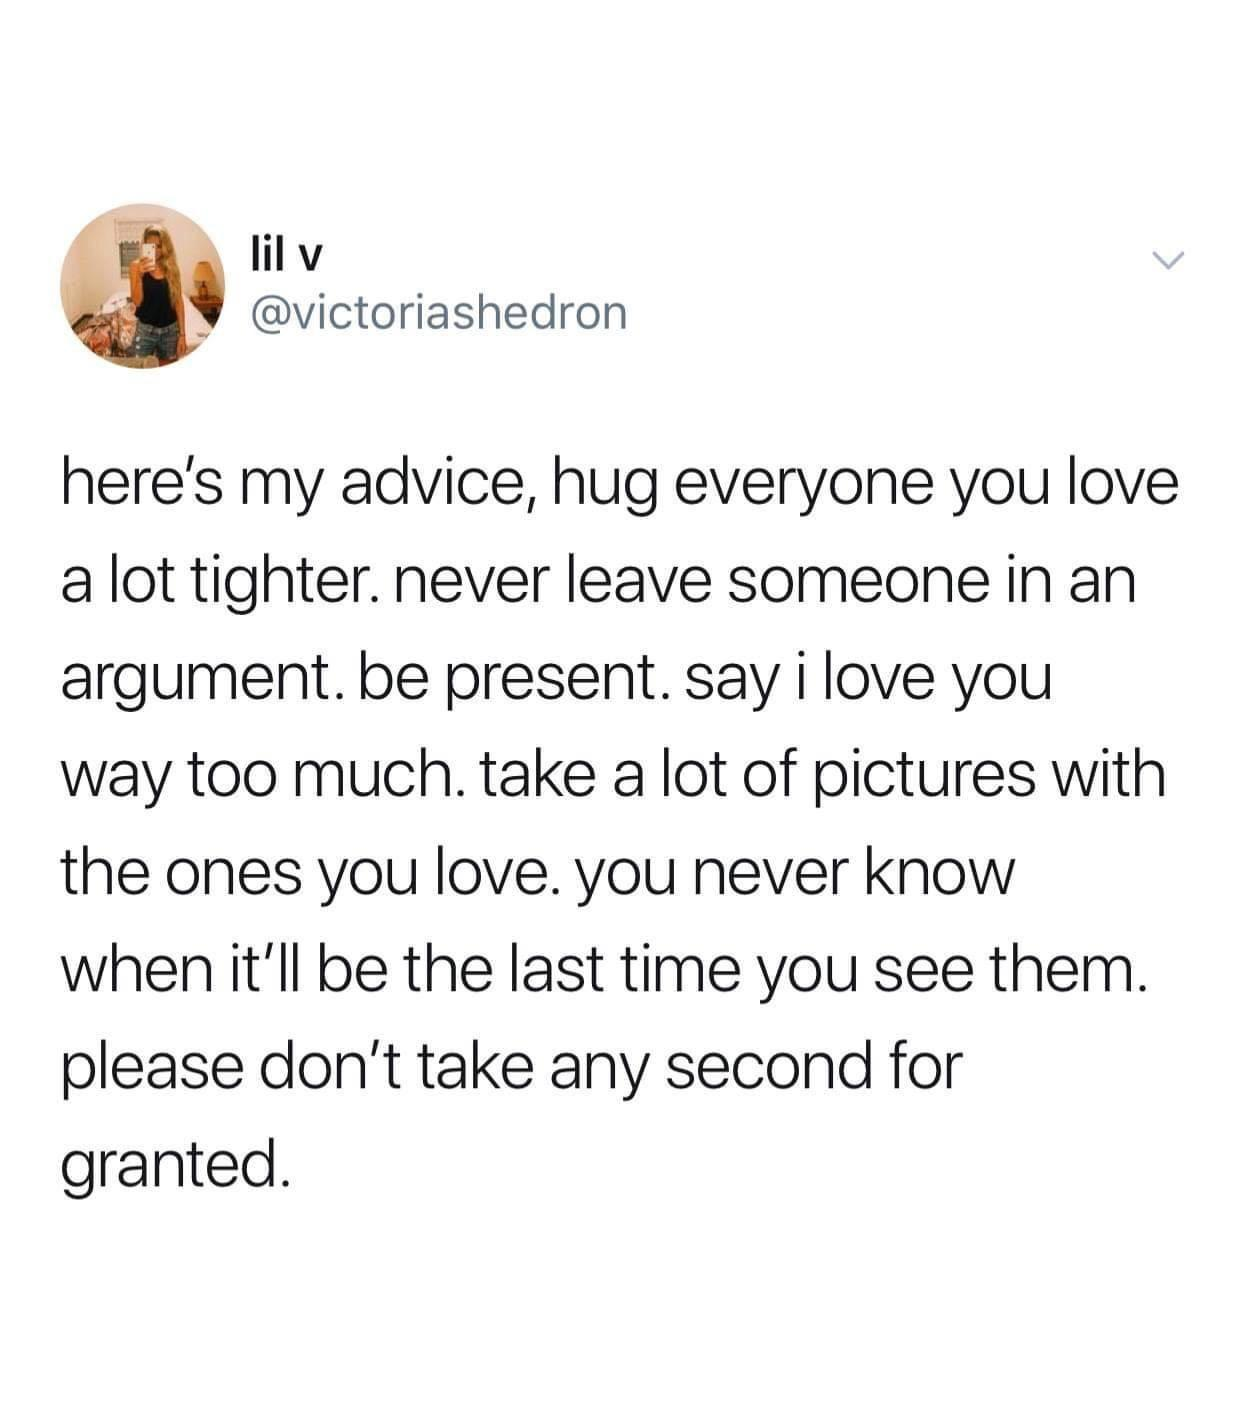 [Image] Cherish what you have by being actively present with love